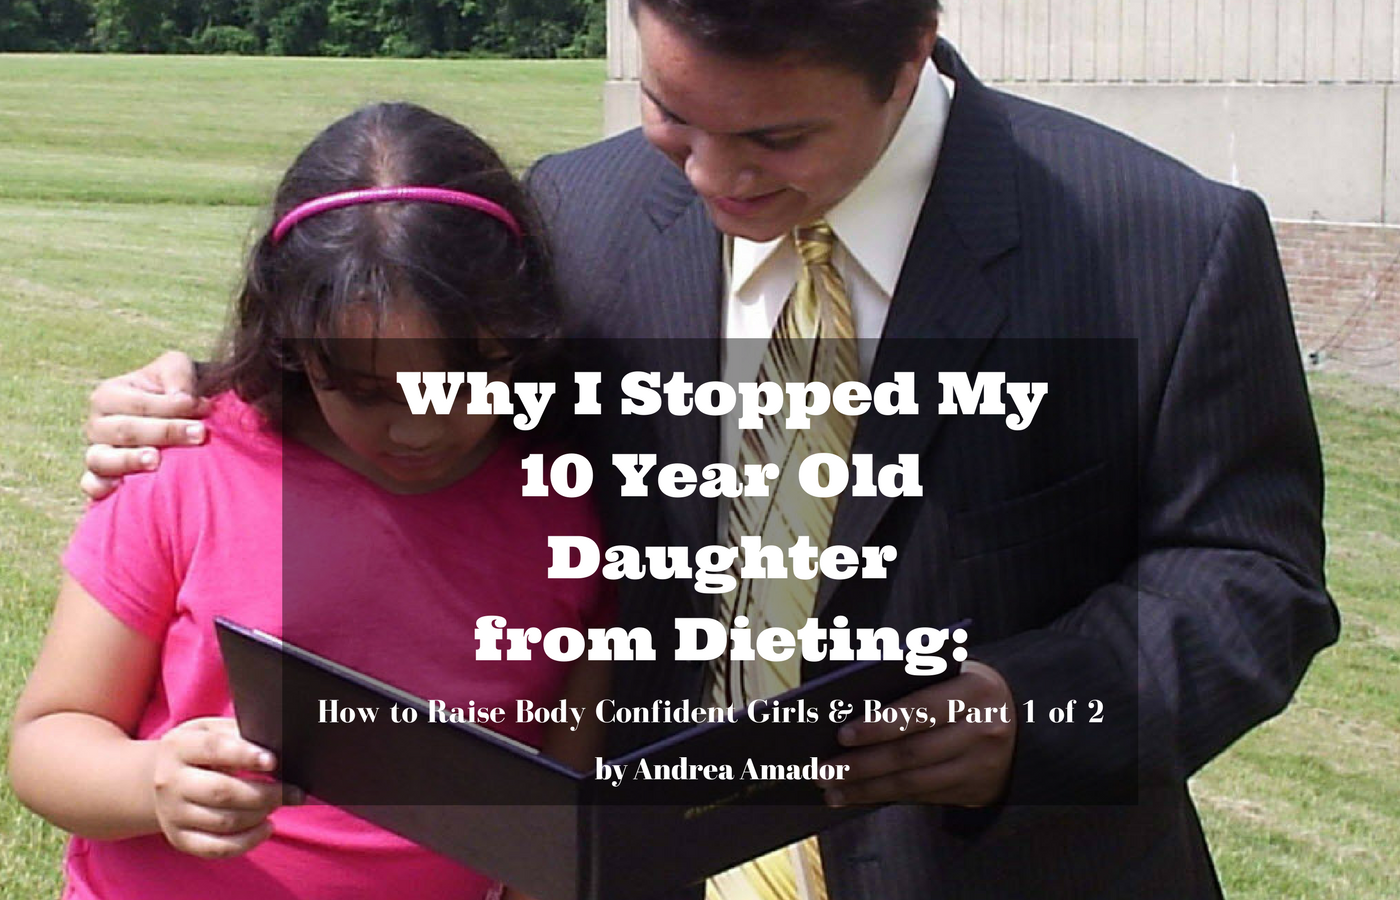 Why I Stopped My 10 Year Old Daughter from Dieting: How to Raise Body Confident Girls and Boys, Part 1 of 2